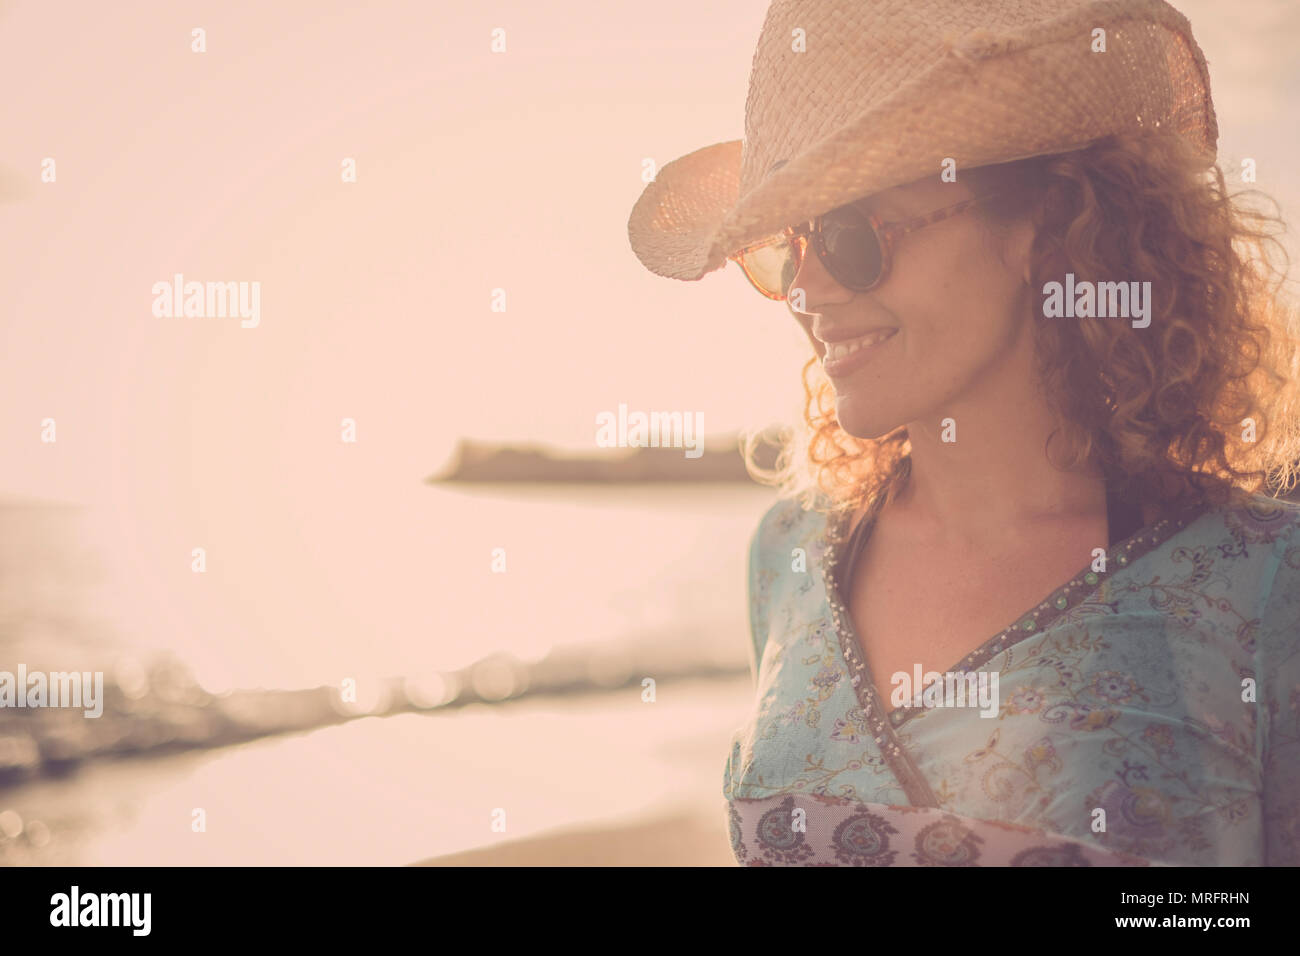 beautiful and wonderful blonde curly hair model middle age with cowboy hat smile and pose at the beach with golden sunset in the background. colored a - Stock Image